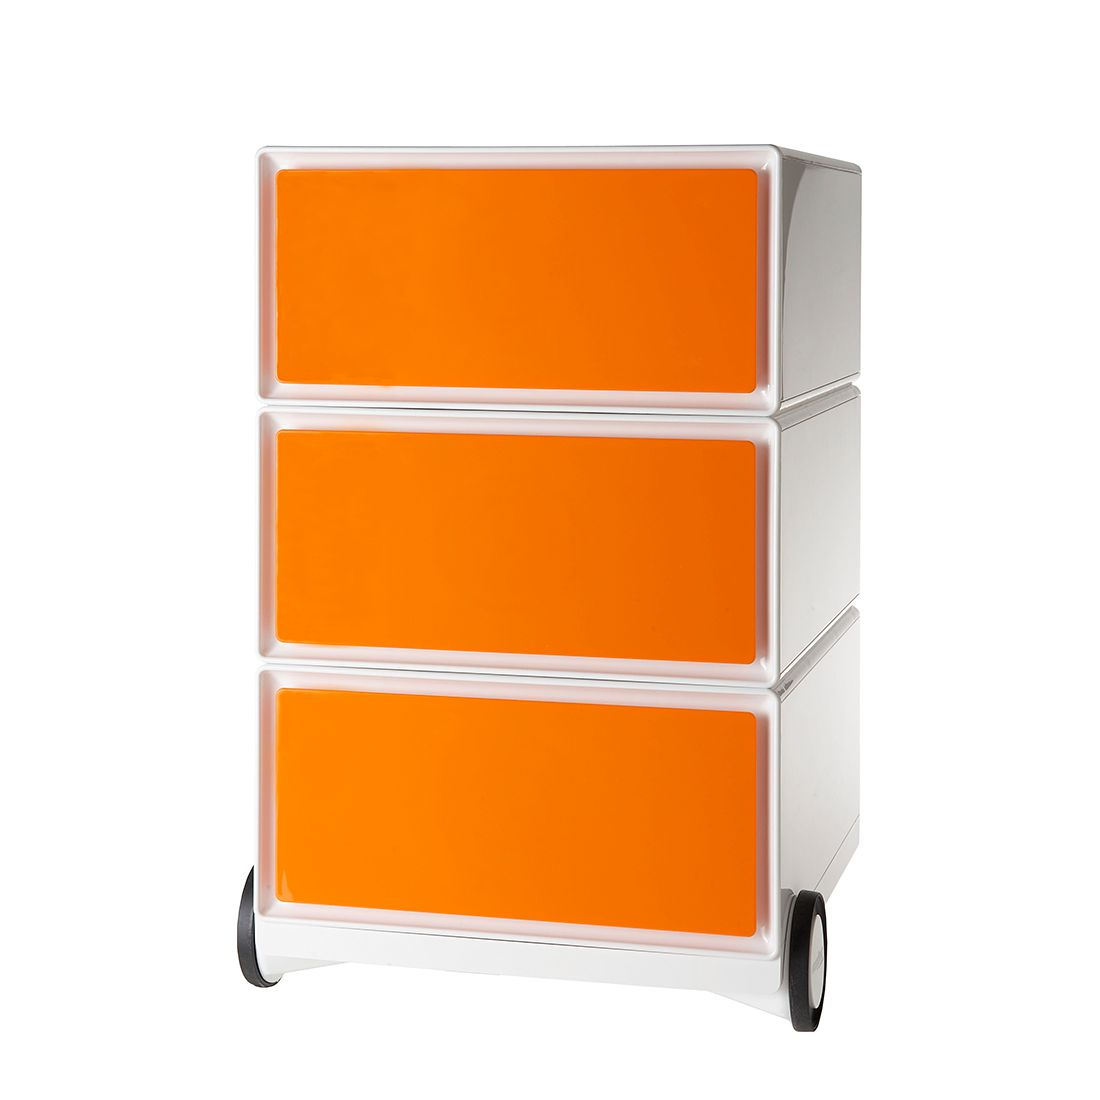 Rollcontainer easyBox I | Büro | Orange | Kunststoff | easyOffice by Paperflow